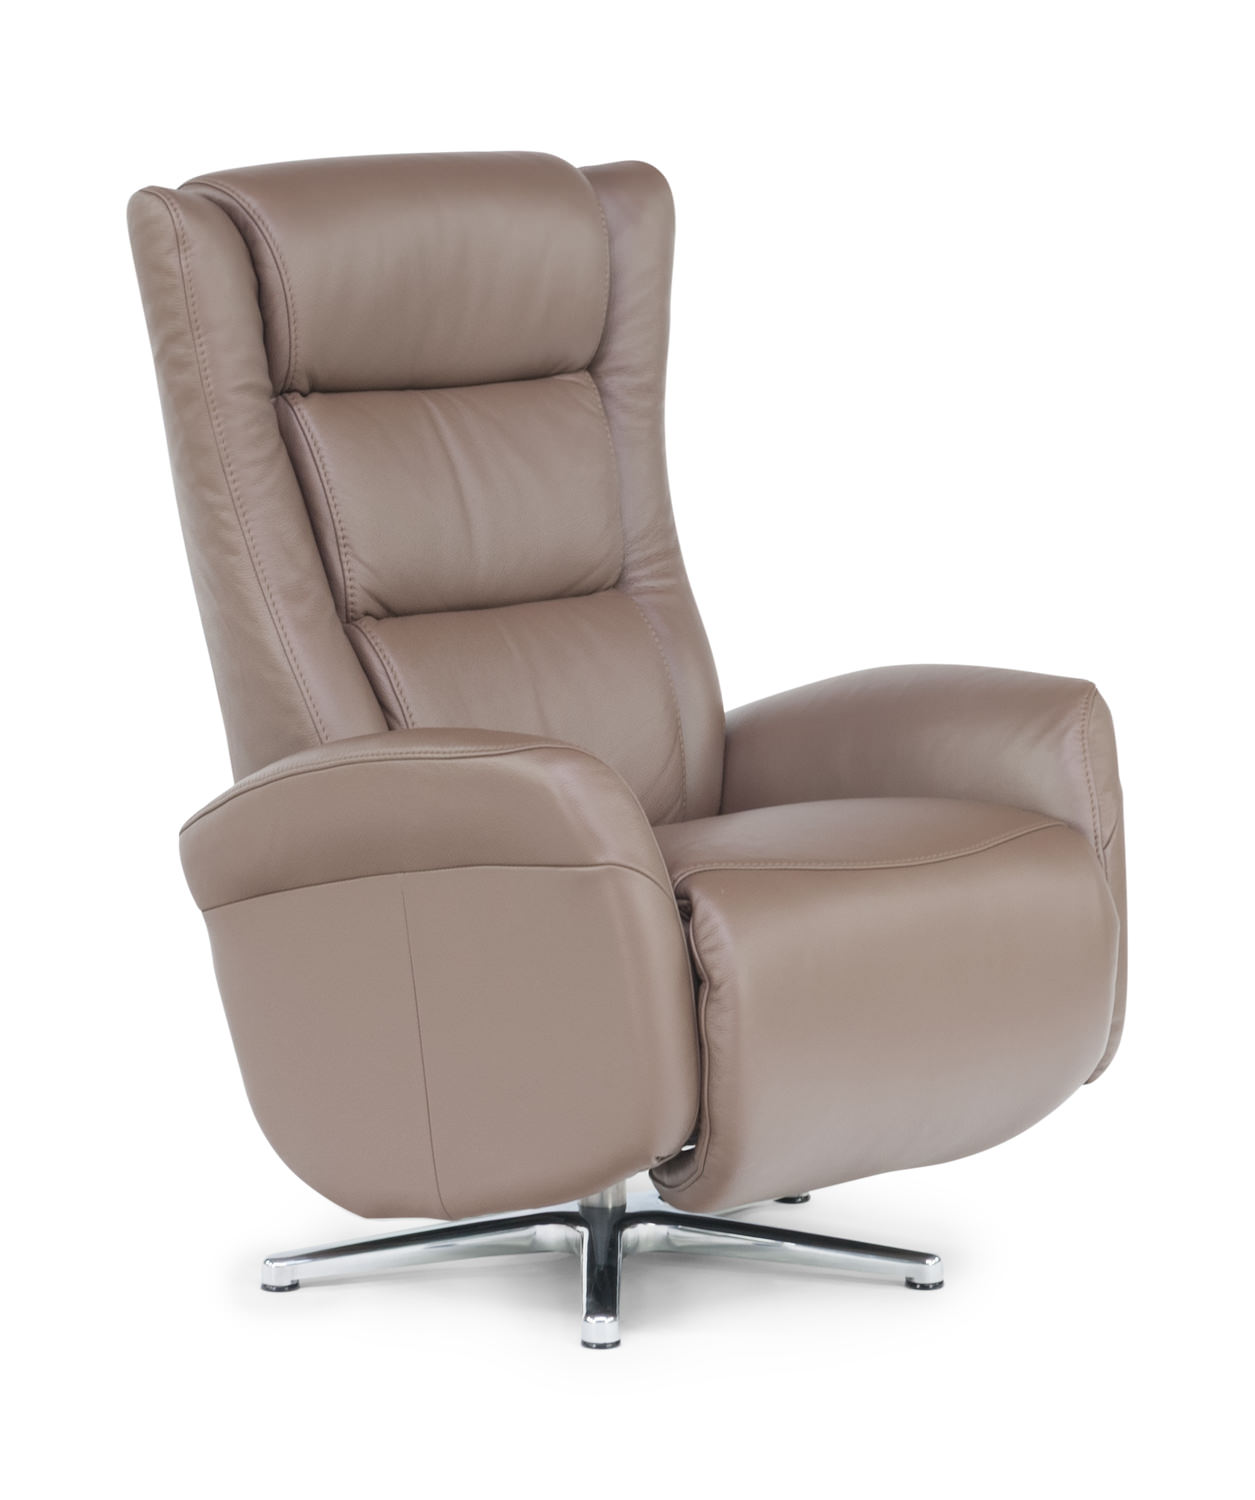 Gert leather swivel recliner lever